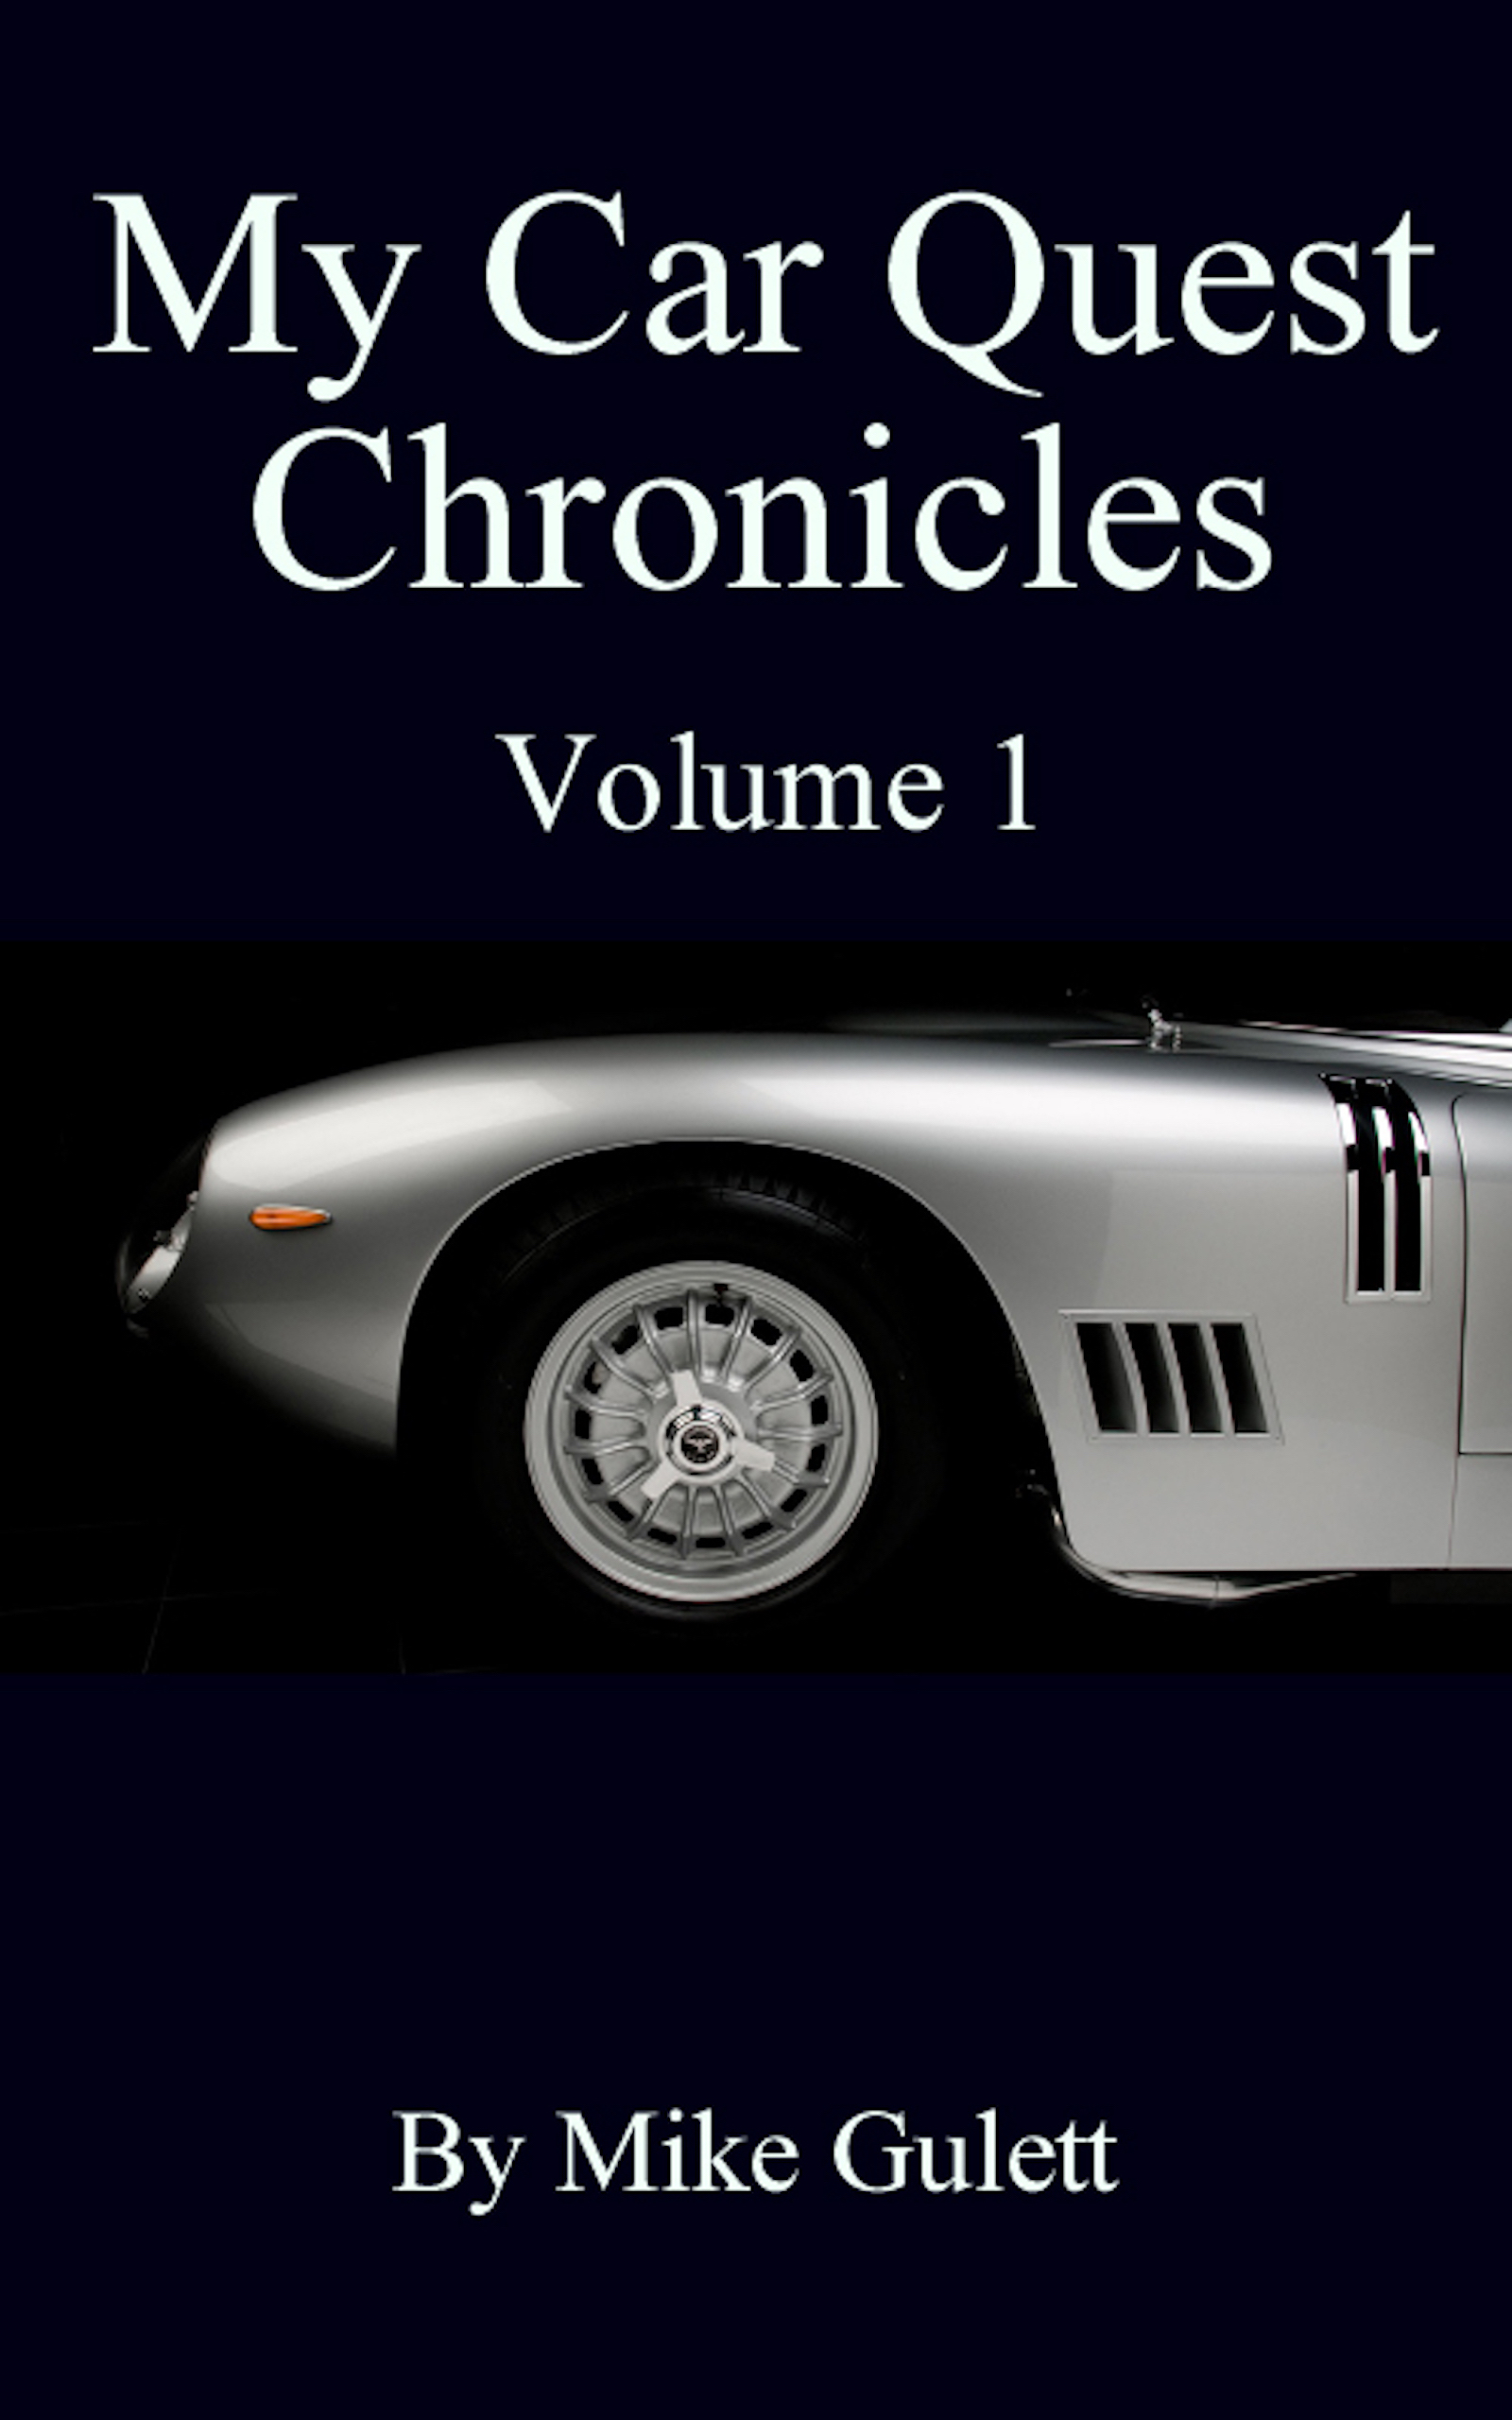 My Car Quest Chronicles Volume 1, an Ebook by Mike Gulett